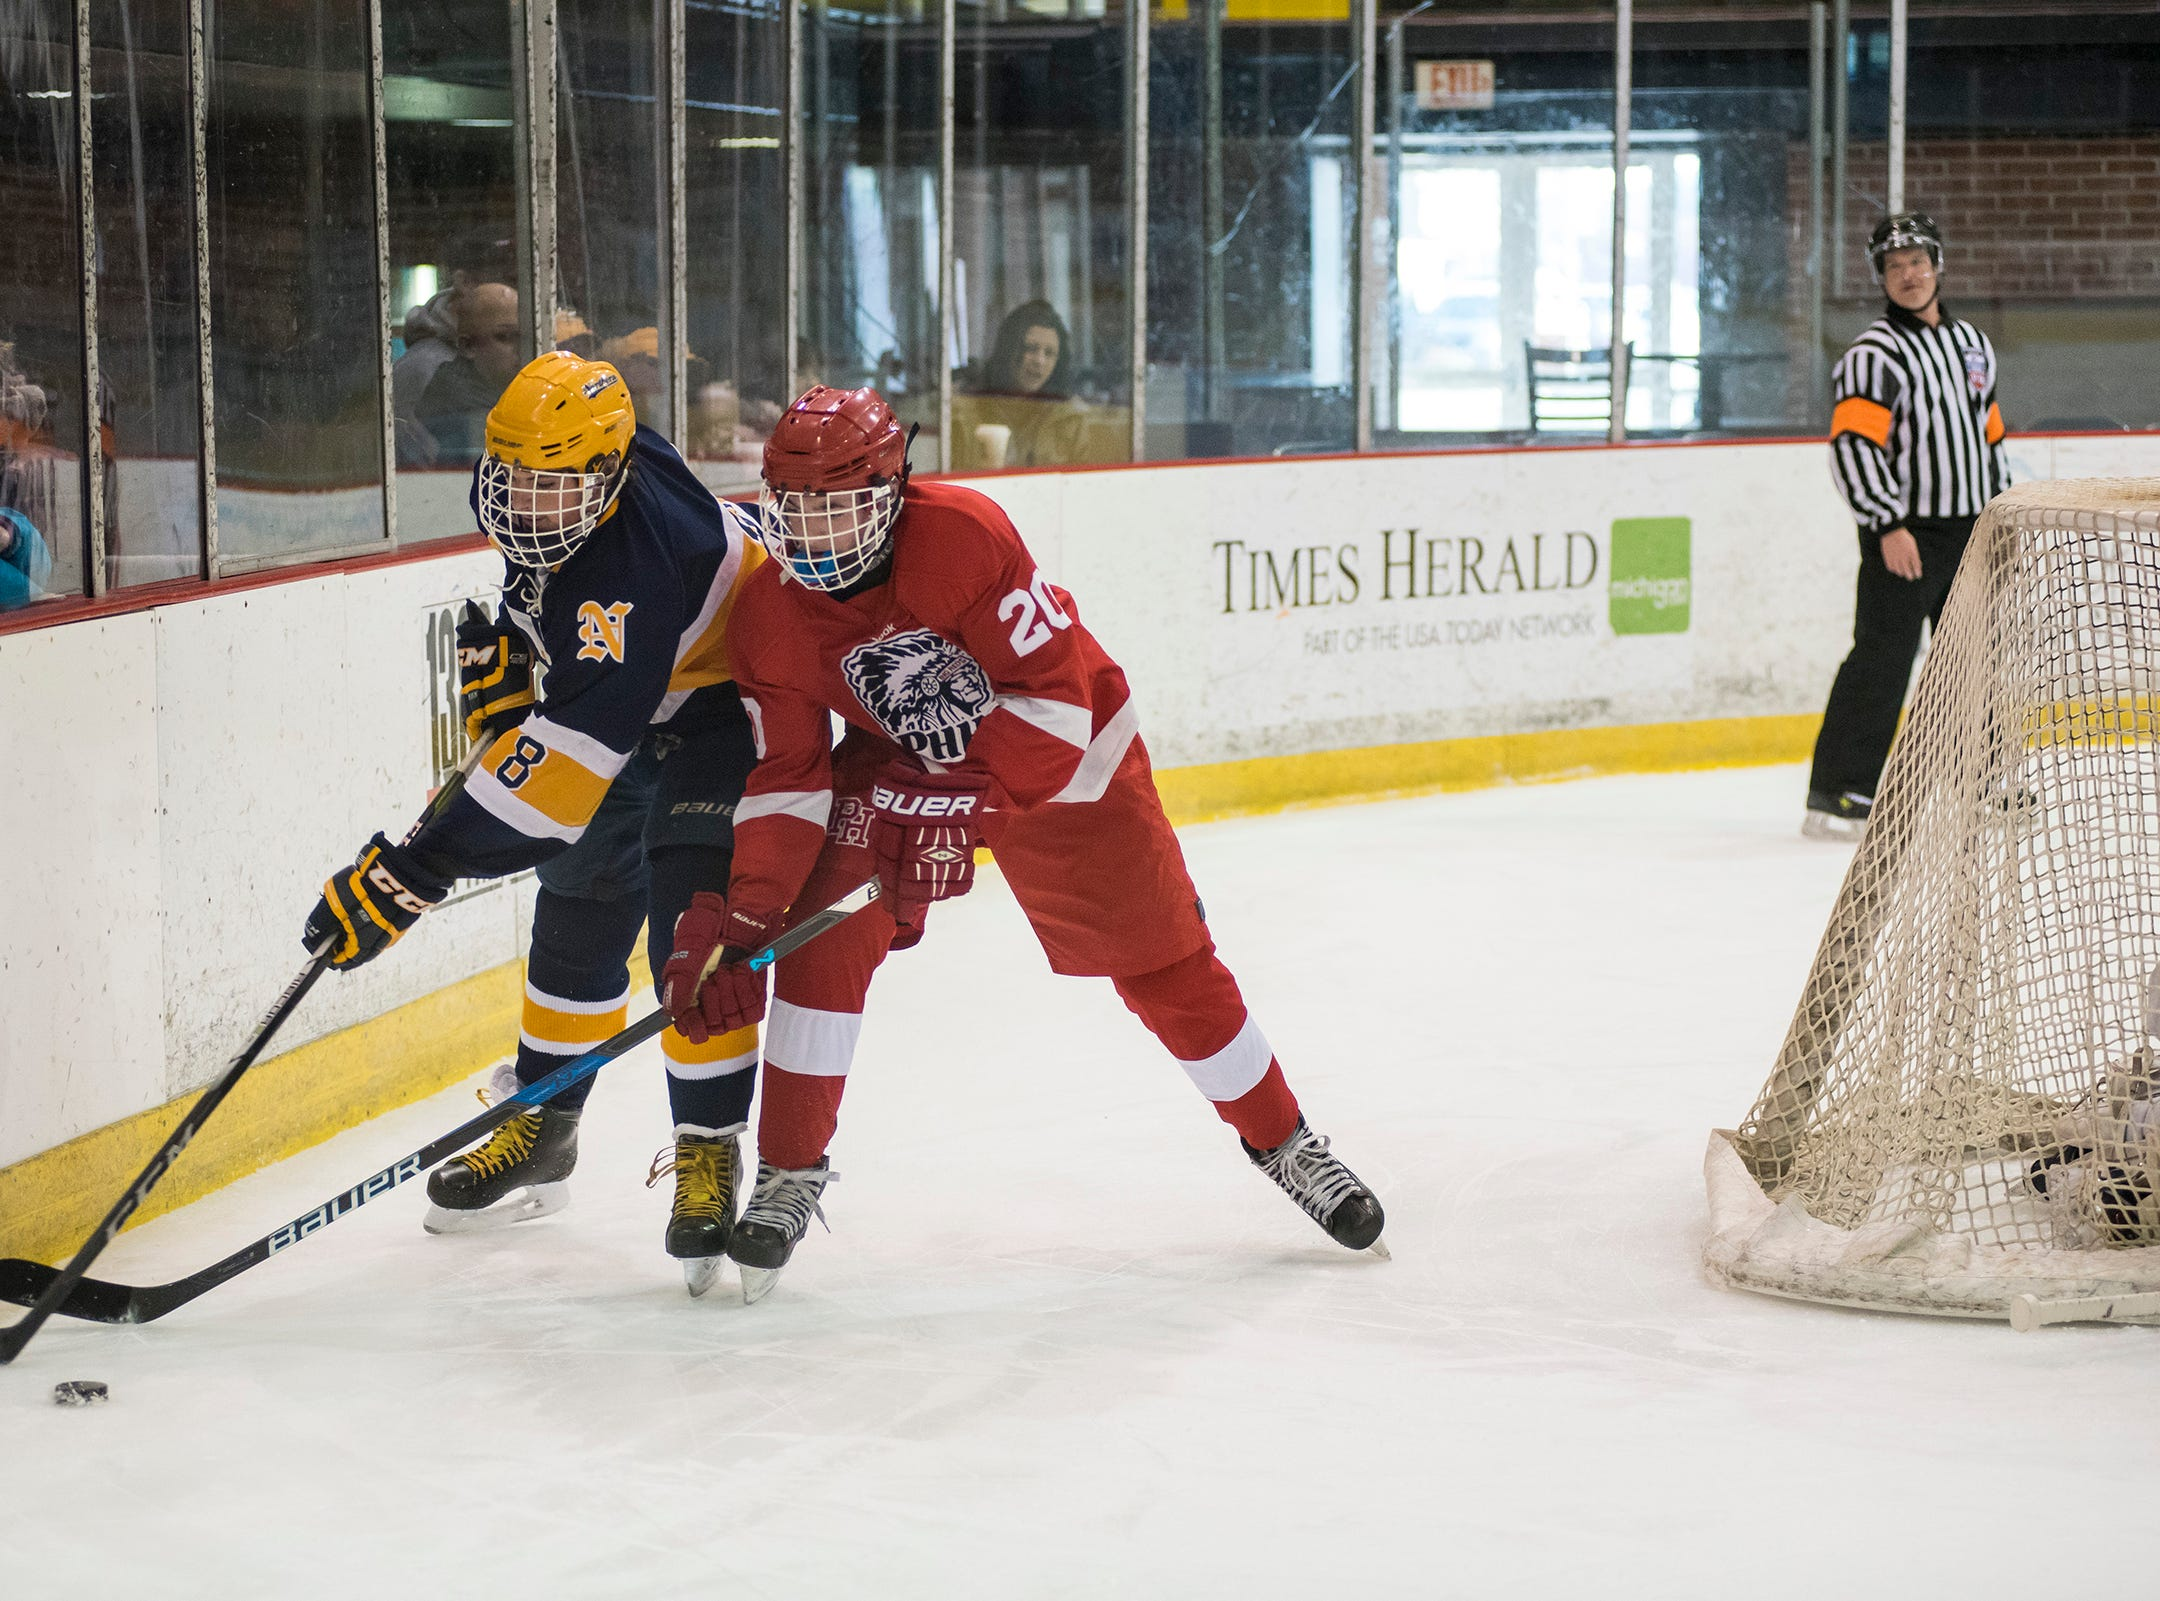 Port Huron Northern High School defense Owen Lawson (8) steals the puck from Port Huron High School defense Kevin Schott during the Larry Manz Holiday Hockey Tournament Friday, Nov. 23, 2018 at McMorran Arena.